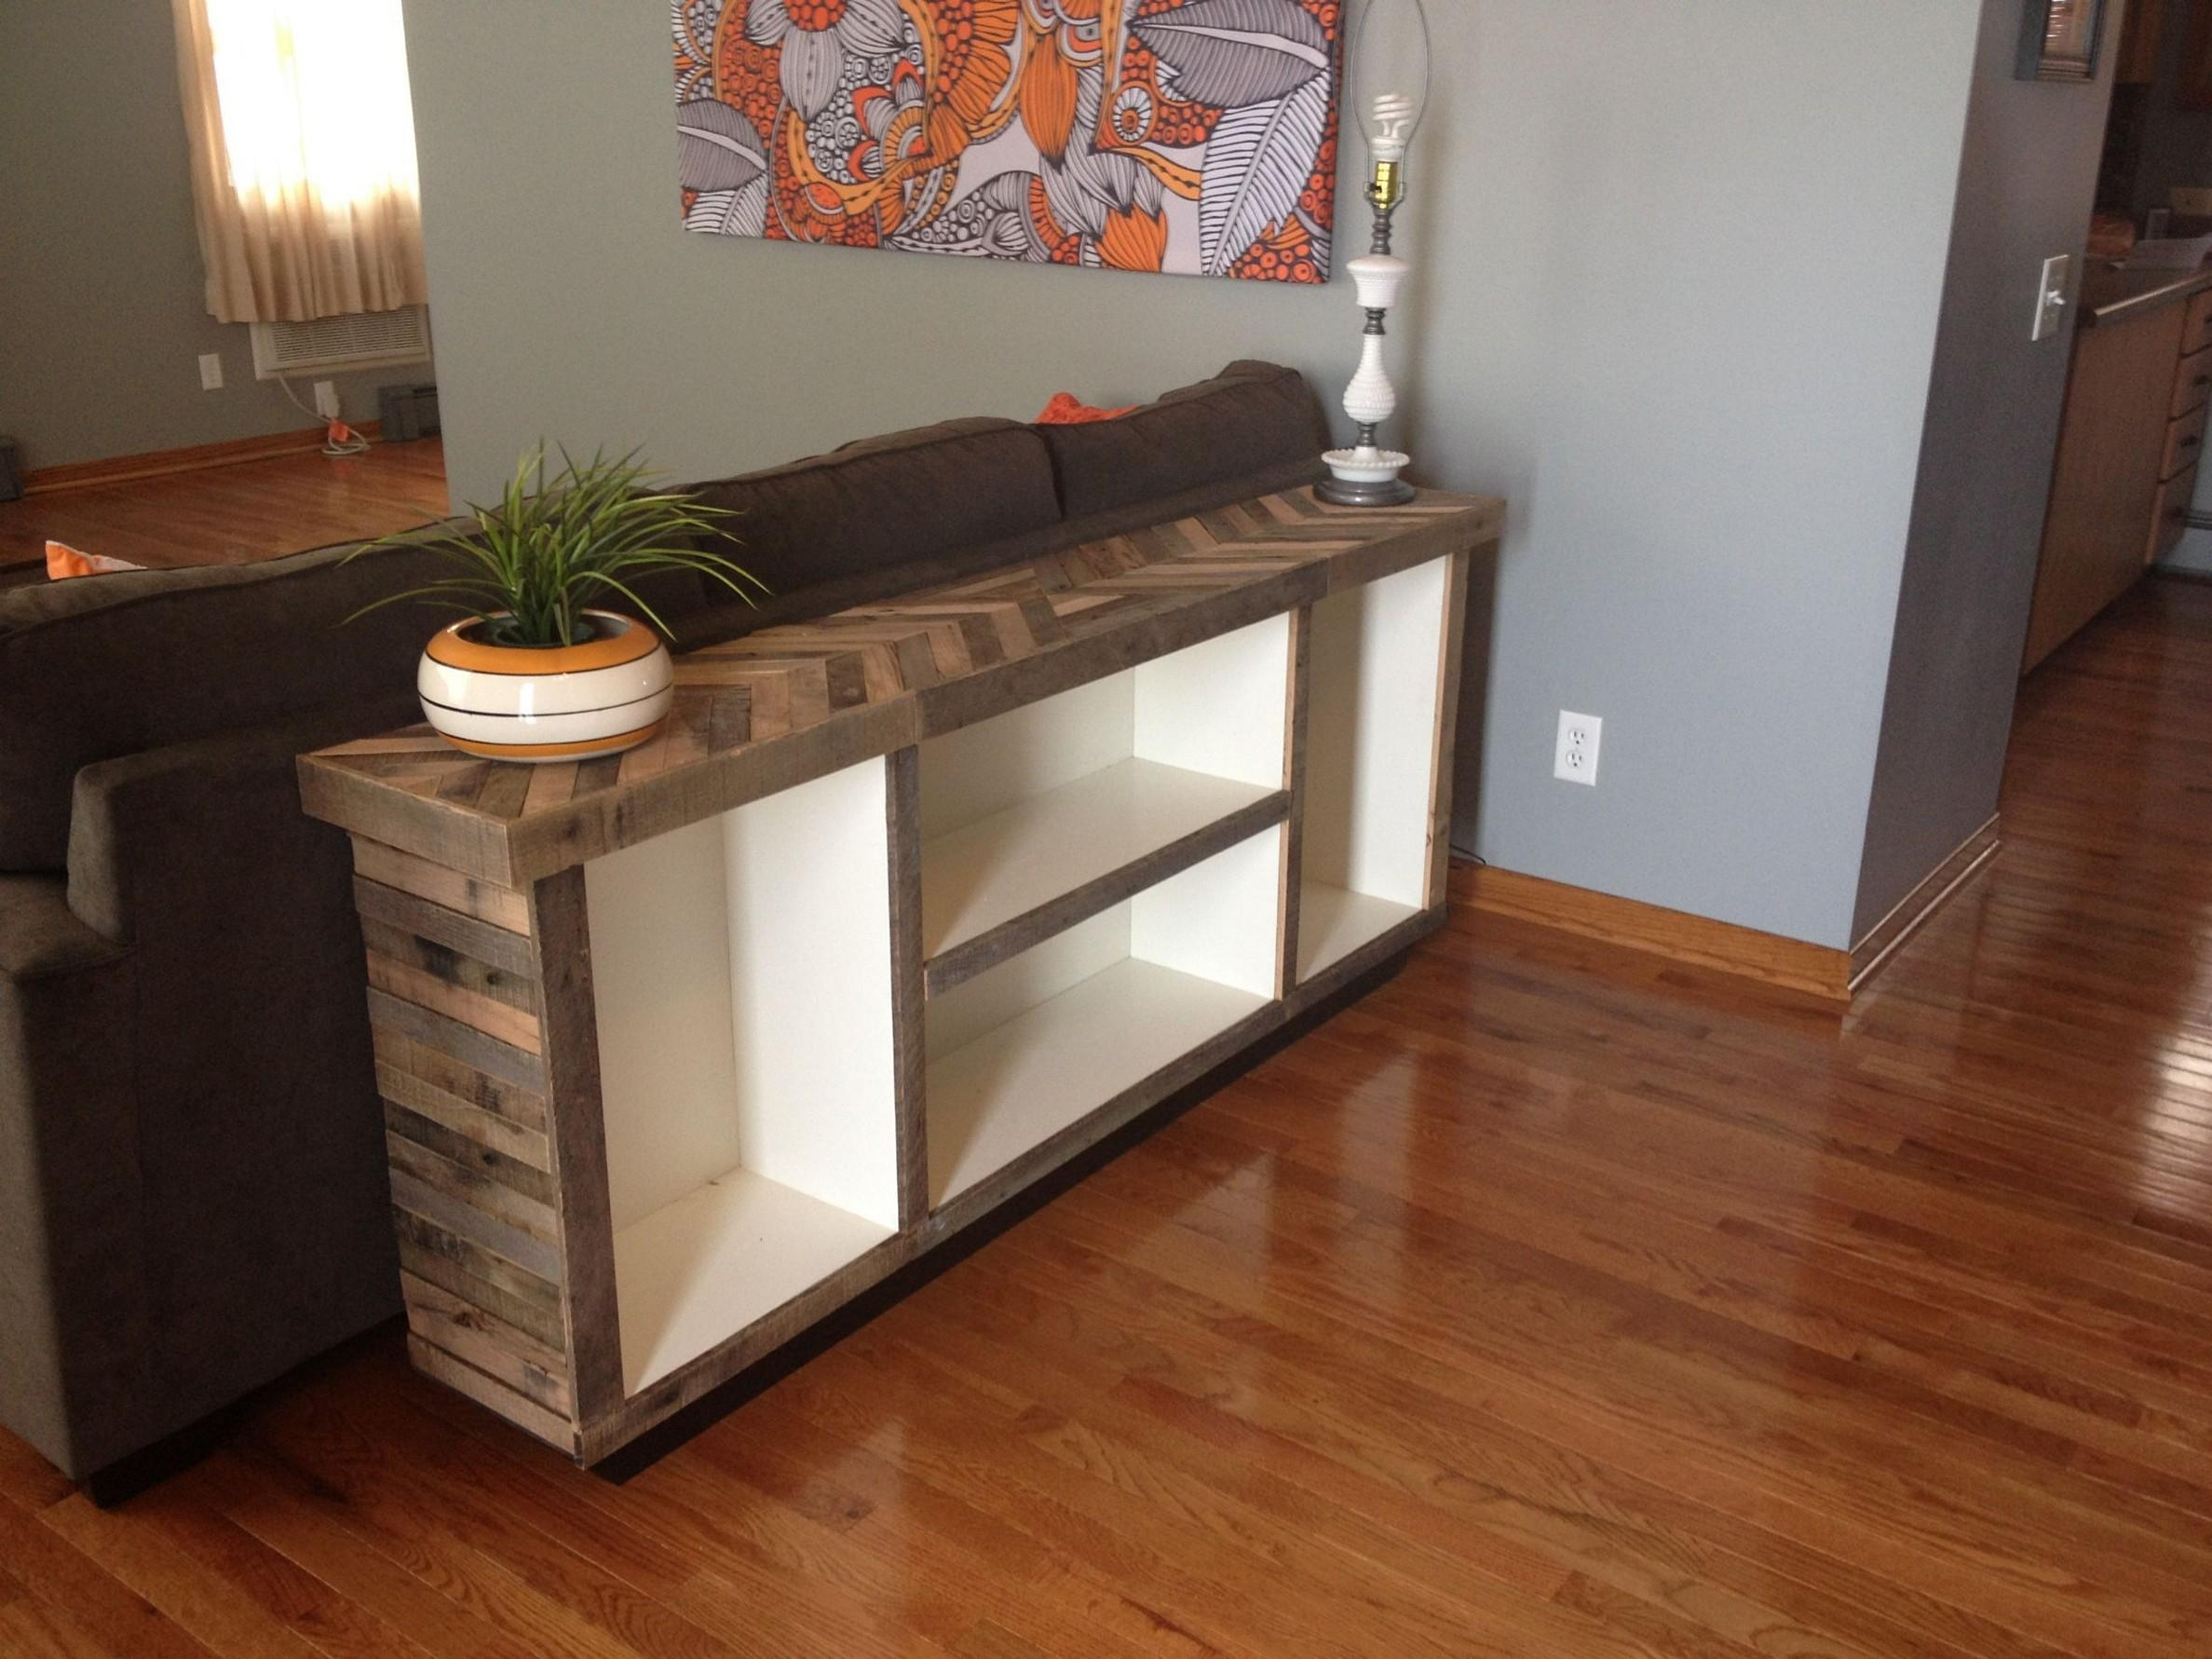 Slate Sofa Table With Concept Gallery 31467 | Kengire Within Slate Sofa Tables (View 9 of 20)